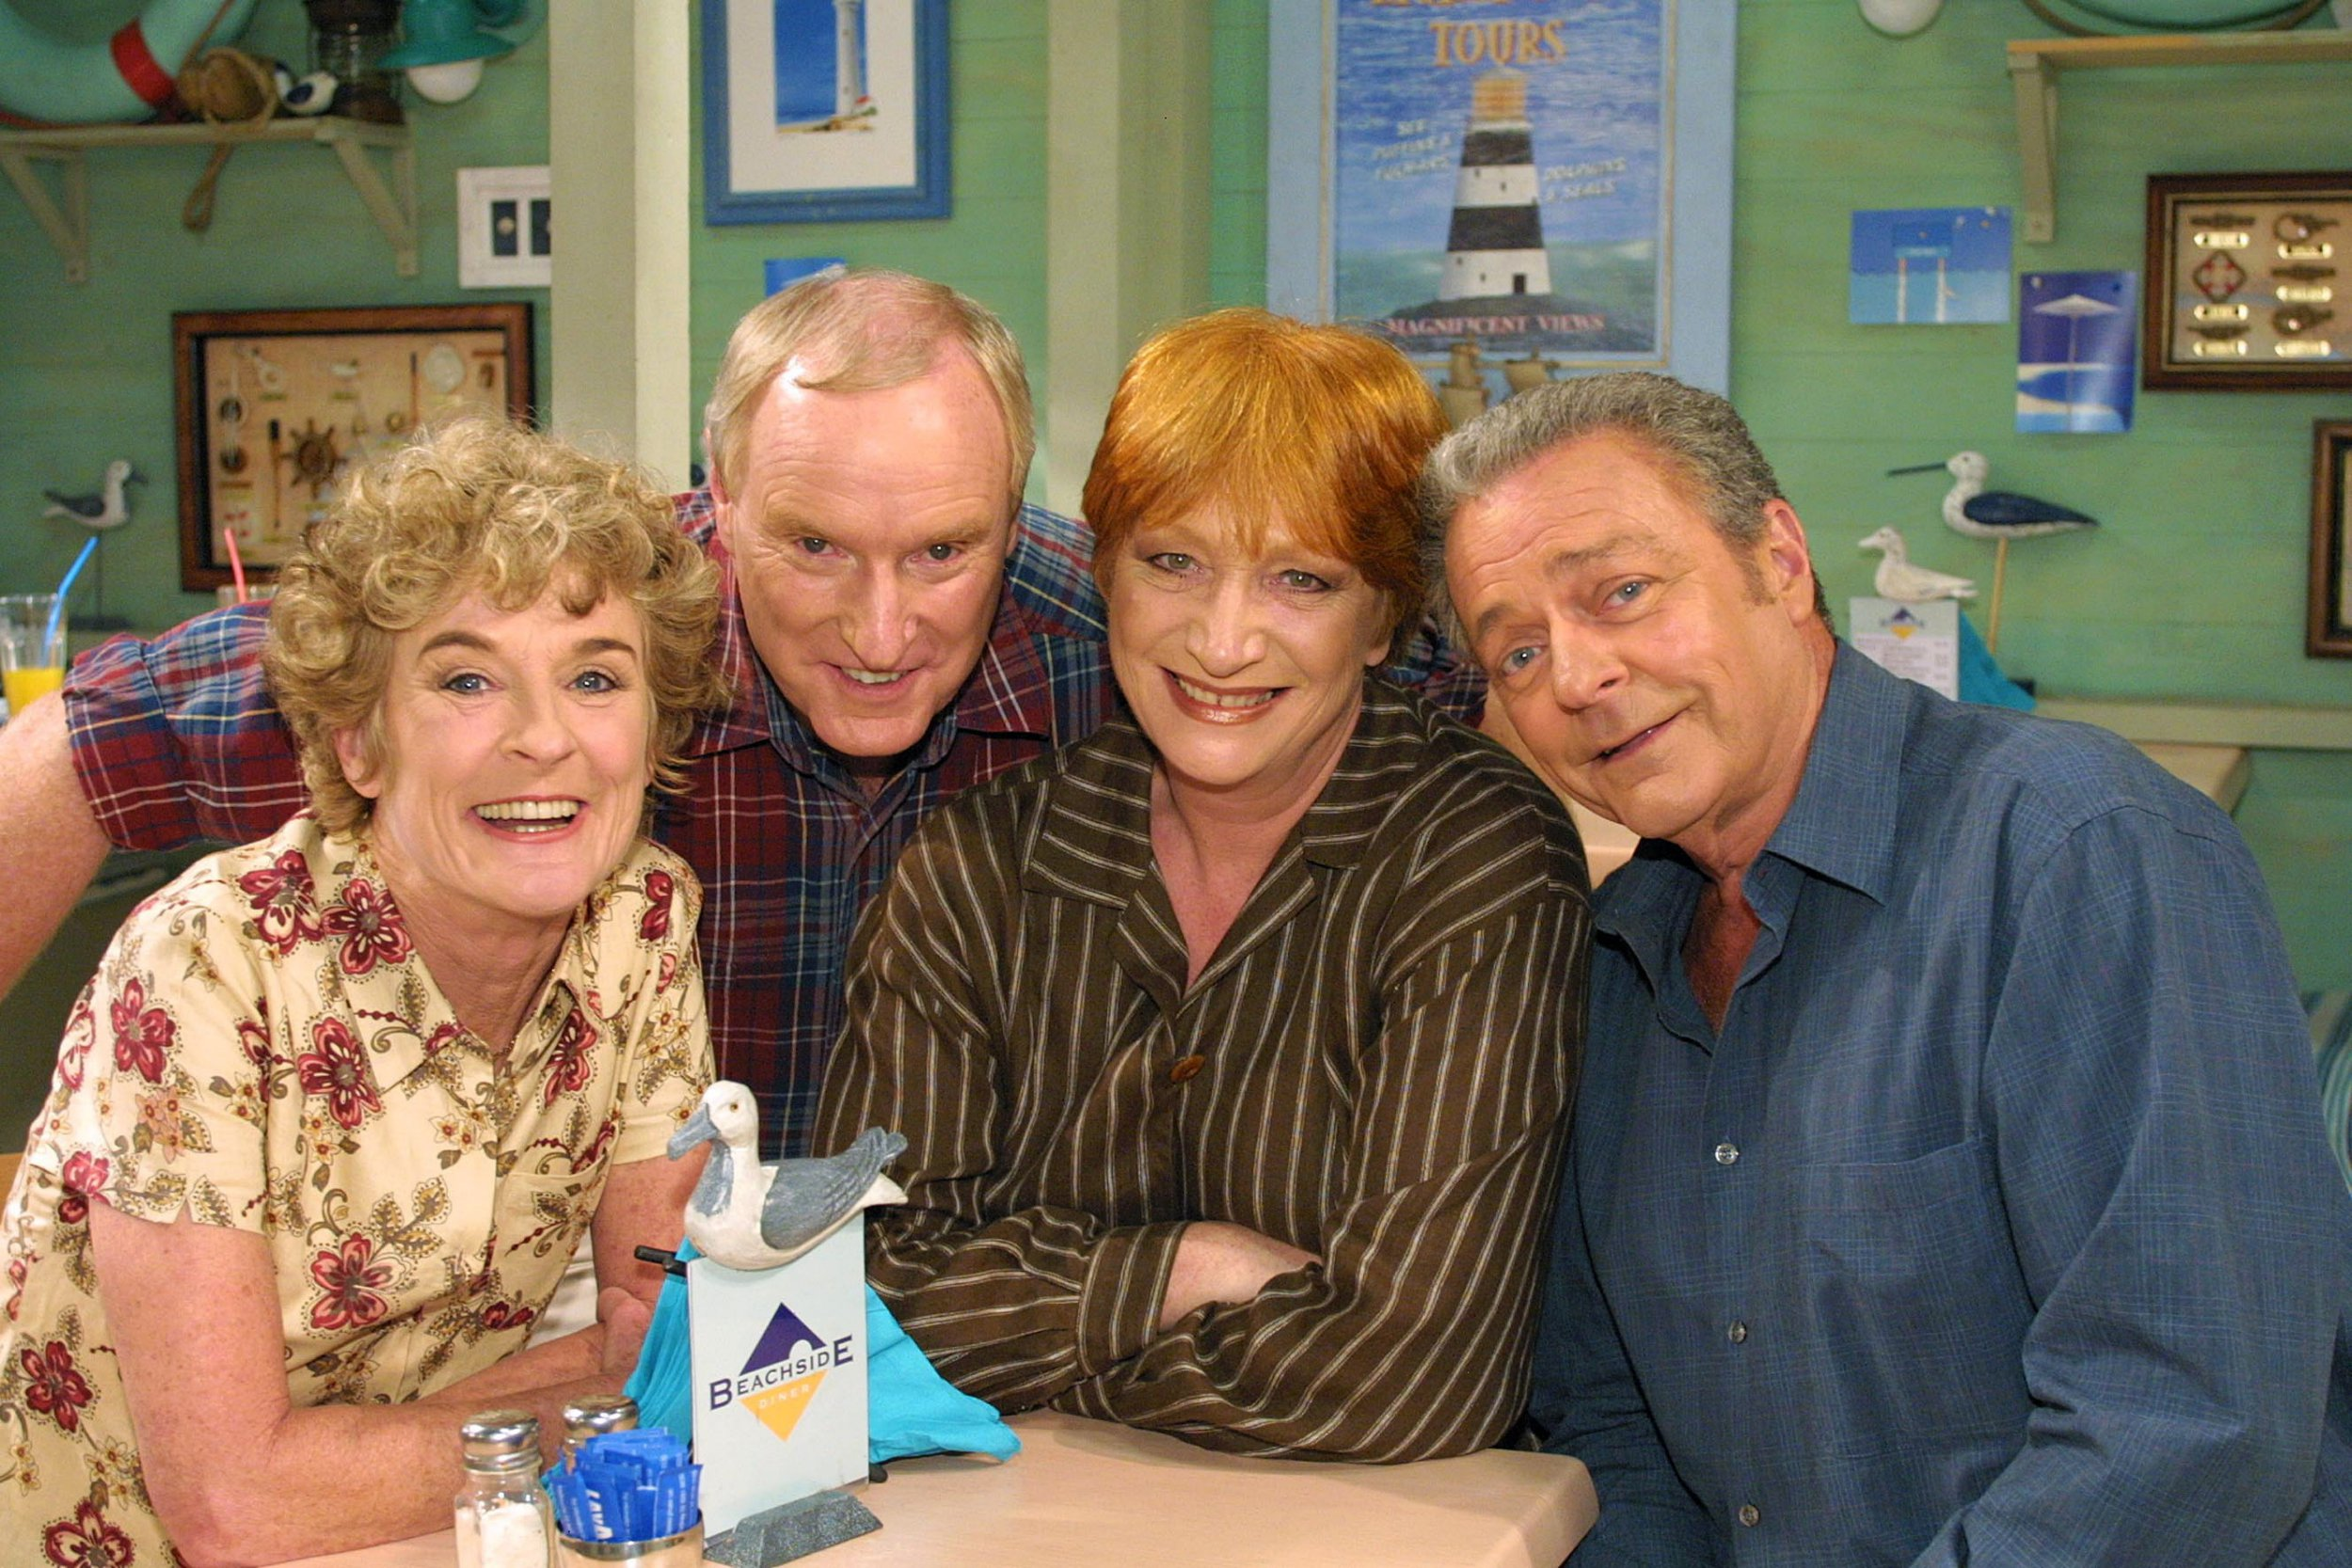 An undated handout photo of (L to R:) Judy Nunn, Ray Meagher, Cornelia Frances and Norman Coburn as they are reunited on the long running Seven soap opera Home and Away. Australian television will celebrate 50 years on Sept. 16, 2006, since TCN-9's first broadcast in 1956. (AAP Image/Seven) NO ARCHIVING, EDITORIAL USE ONLY